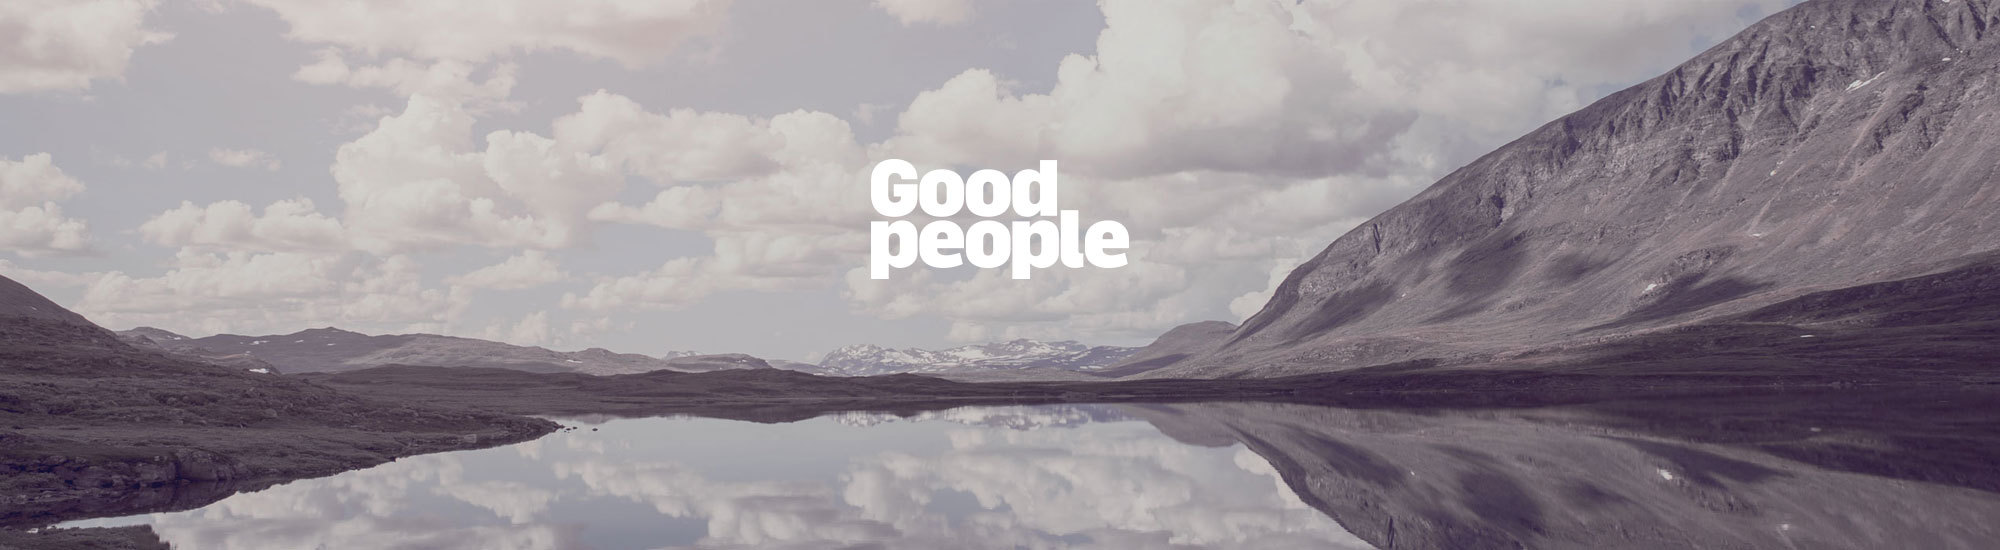 Good people banner